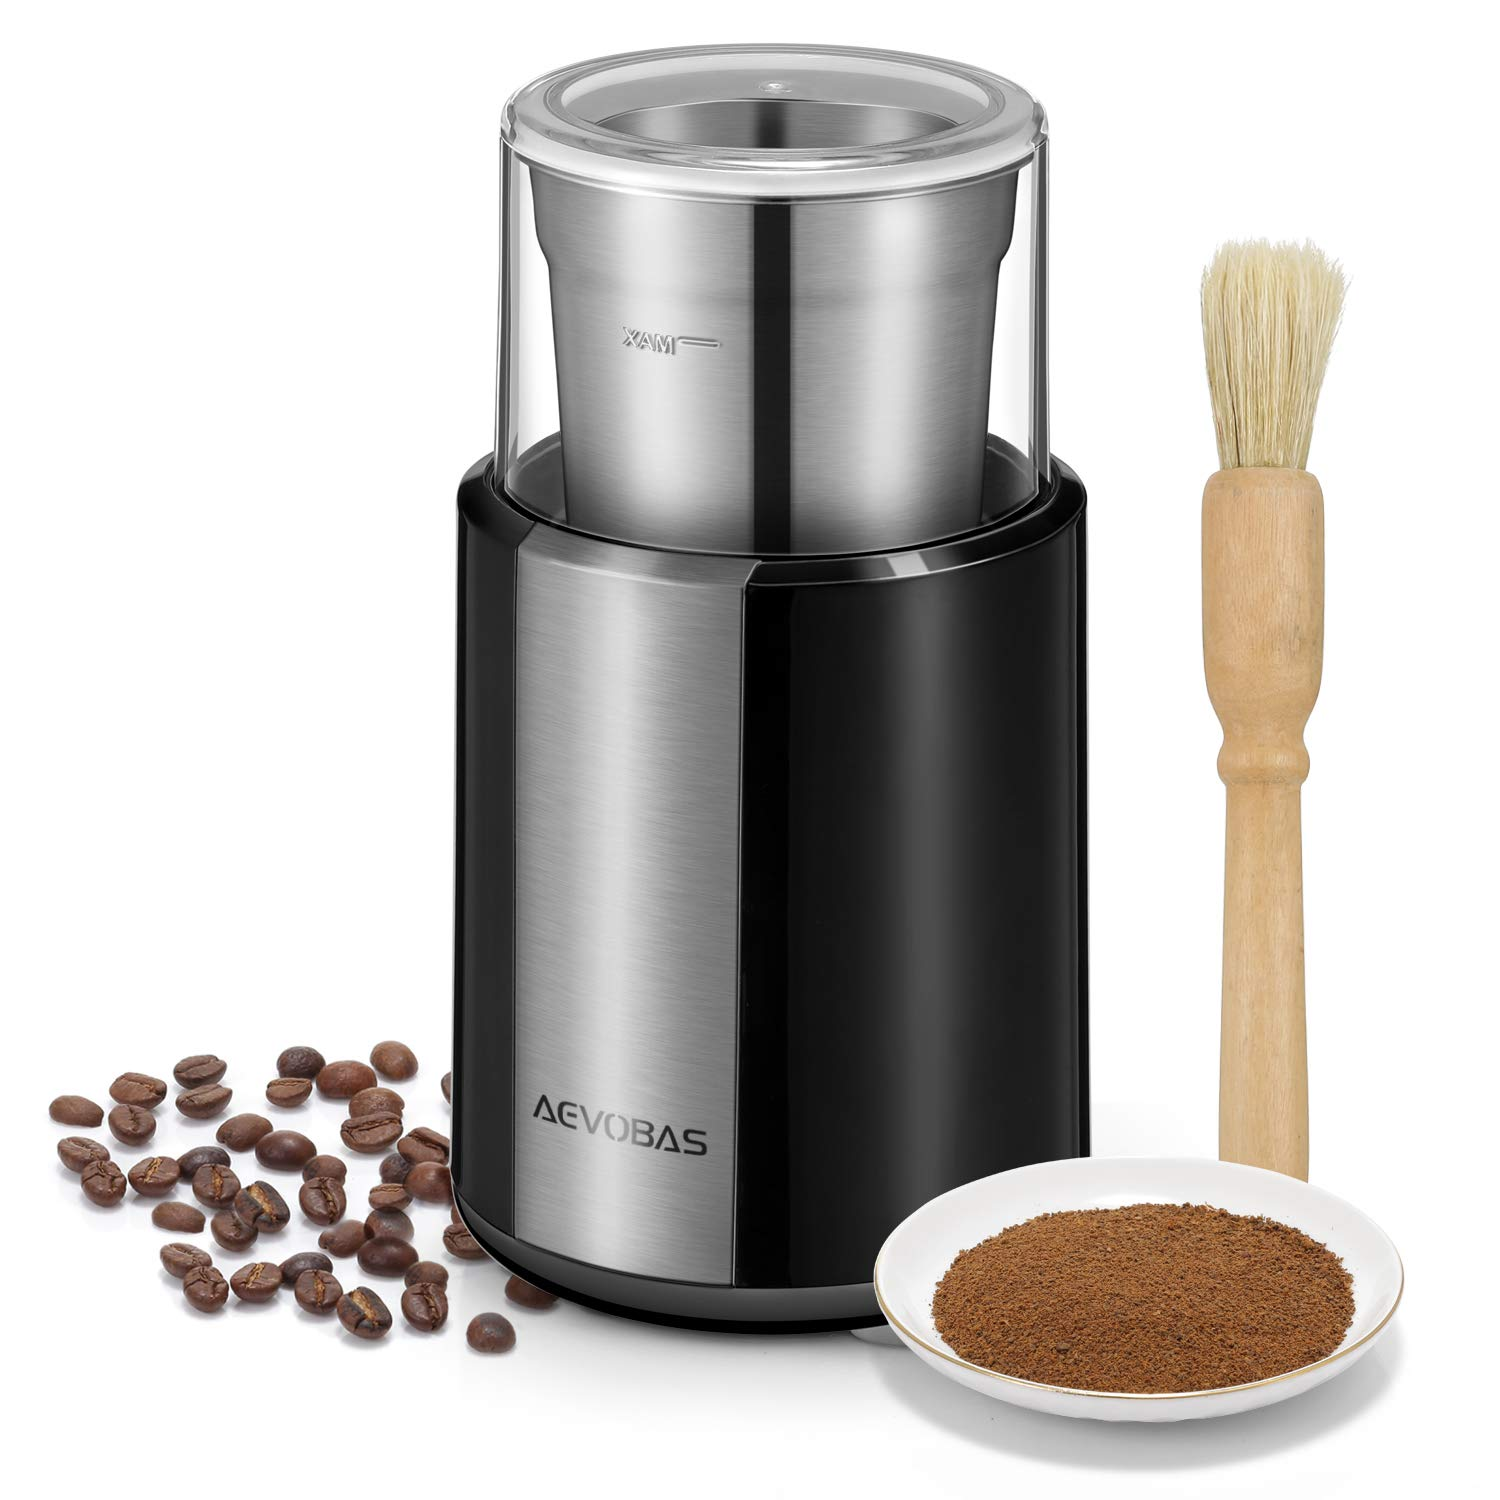 AEVOBAS Electric Coffee Grinder Coffee Bean Spice Nut Grinding Machine Stainless Steel Blade Multifunction Household Mill with A Coffee Grinder Cleaning Brush